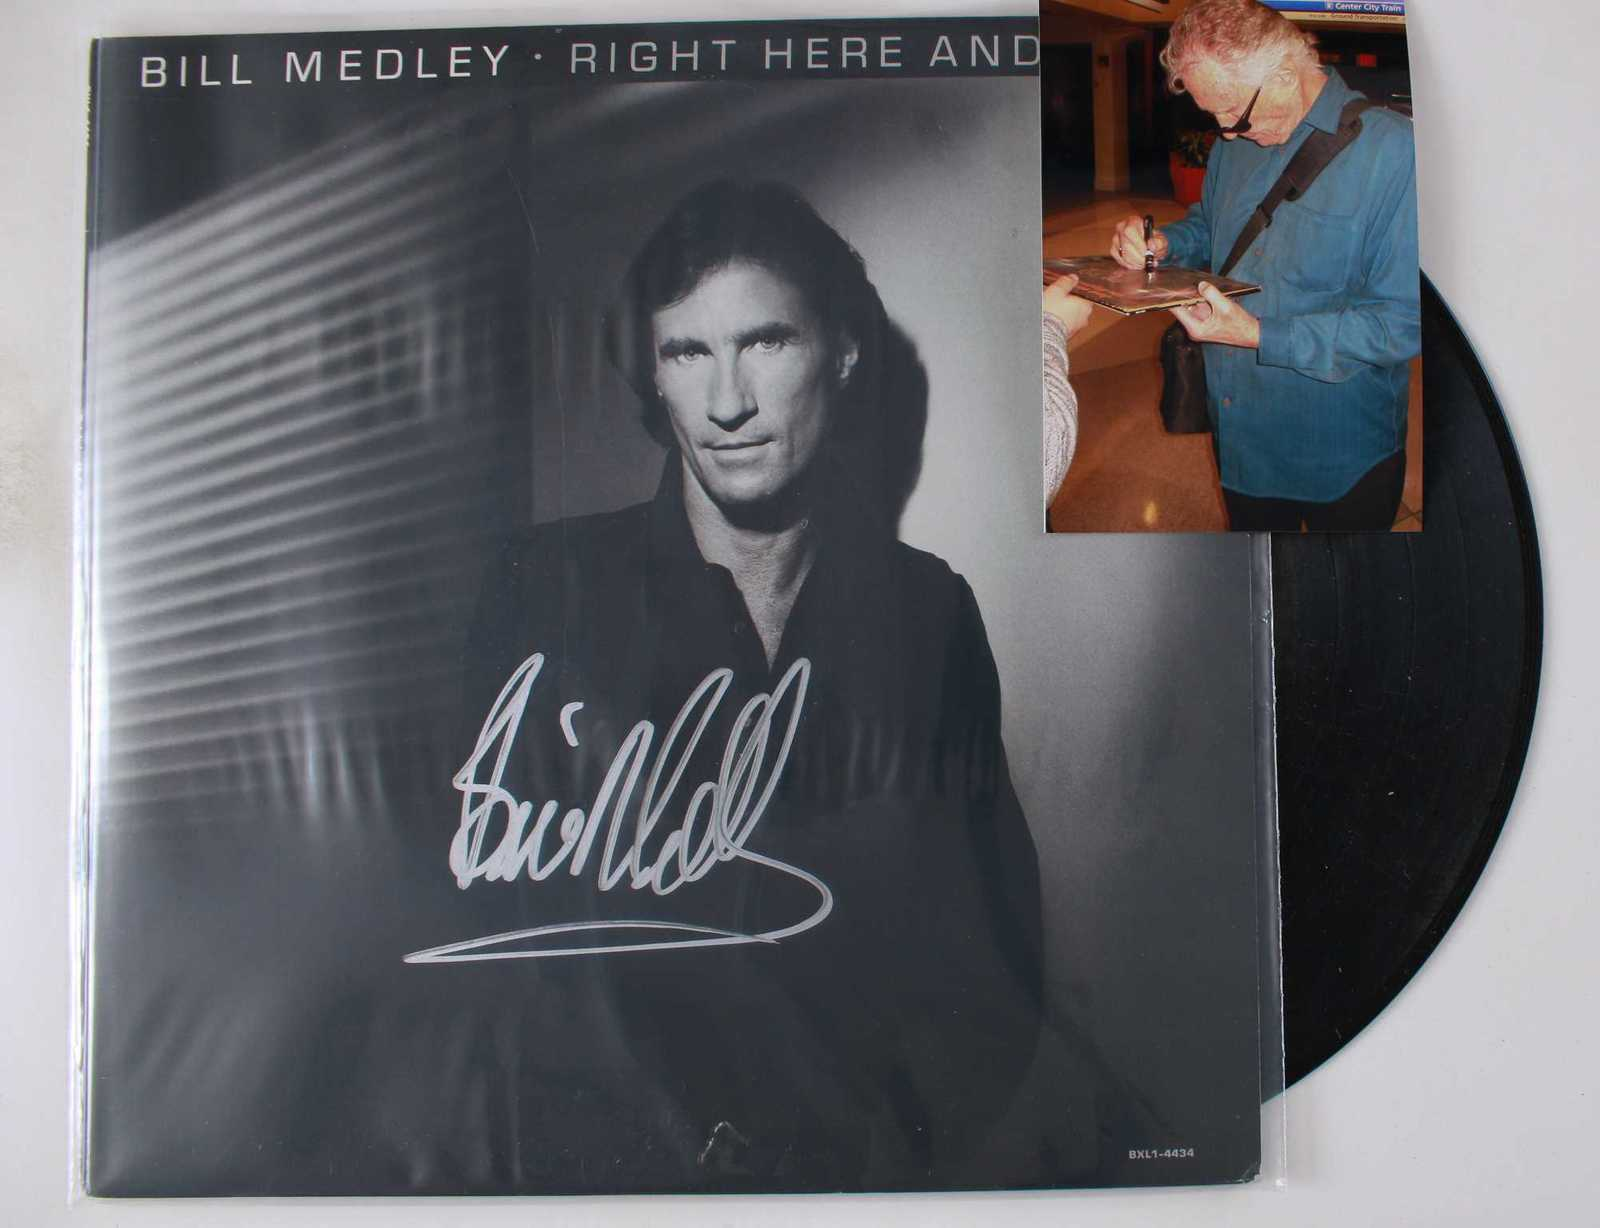 Primary image for Bill Medley Signed Autographed Record Album w/ Proof Photo